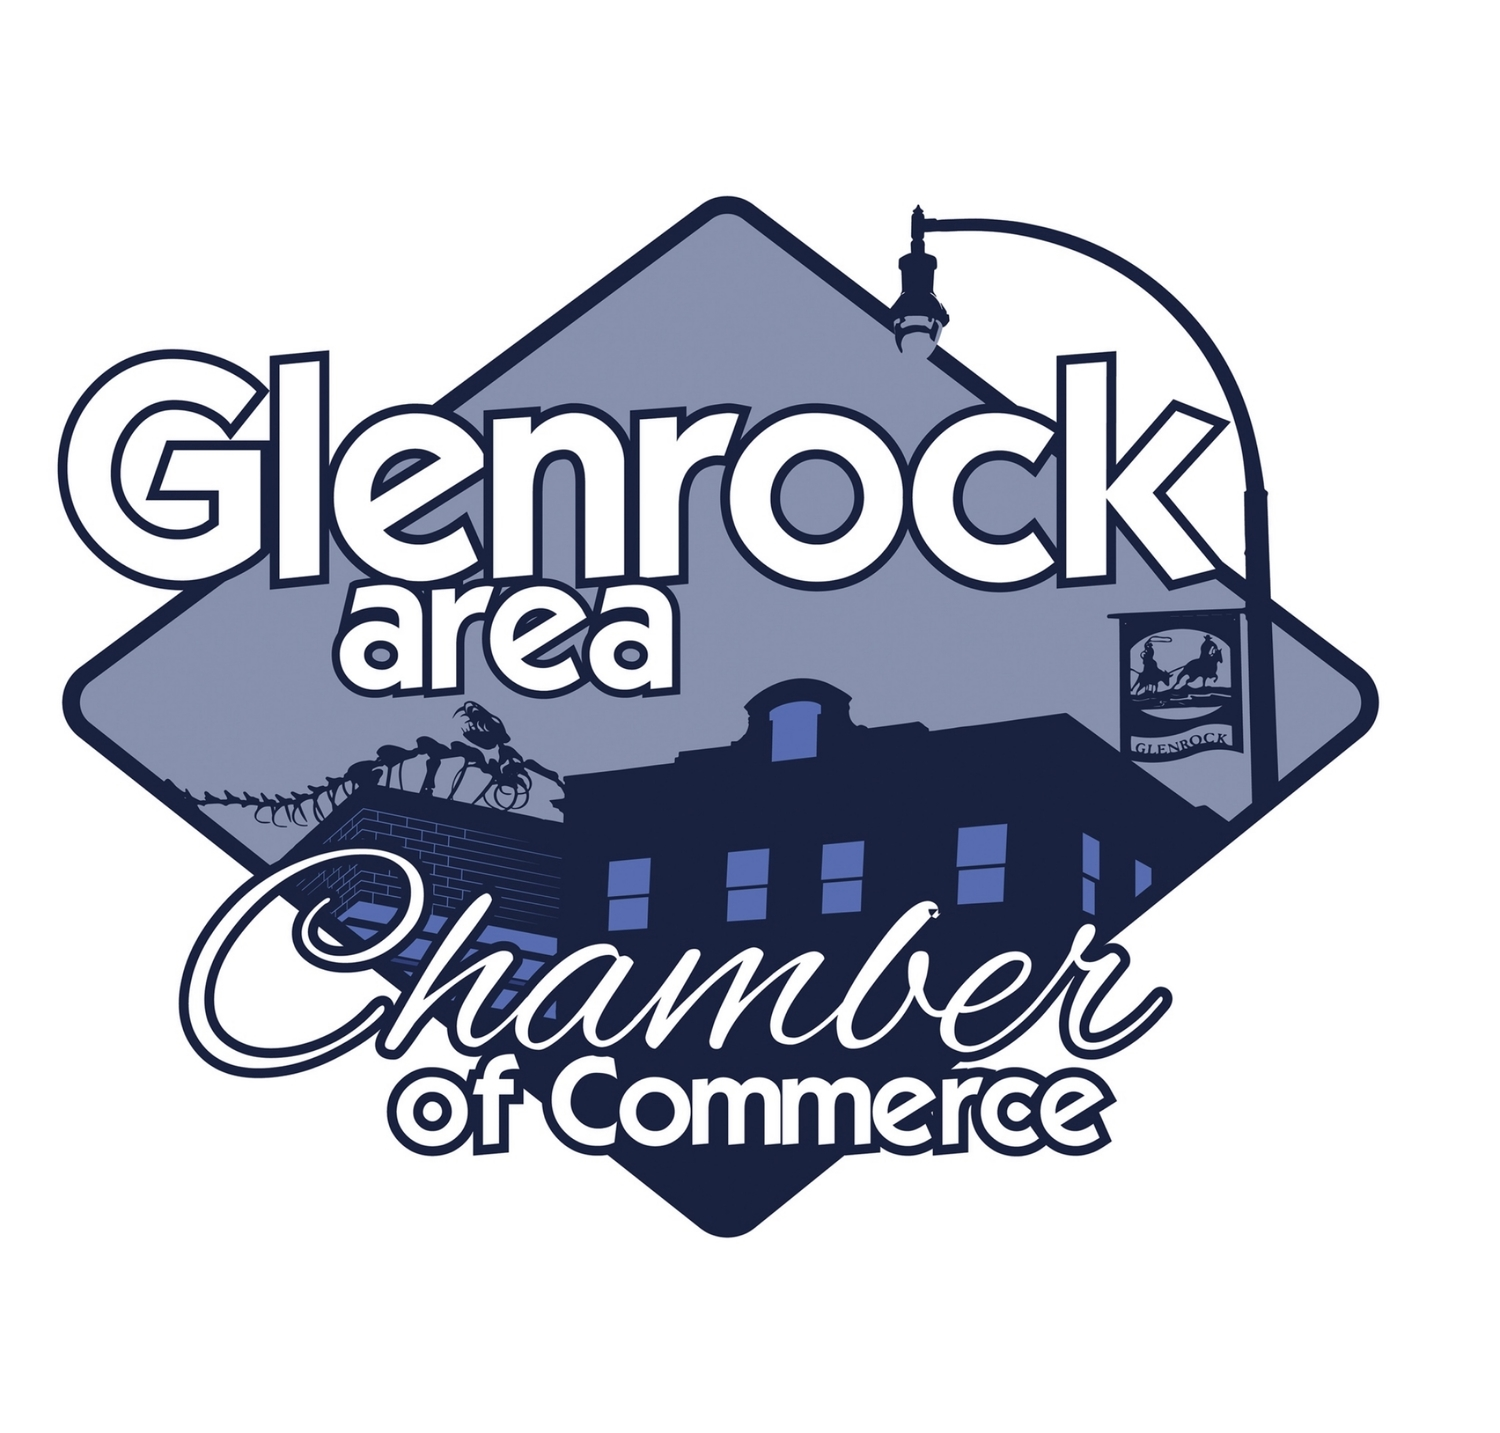 Glenrock Area Chamber of Commerce